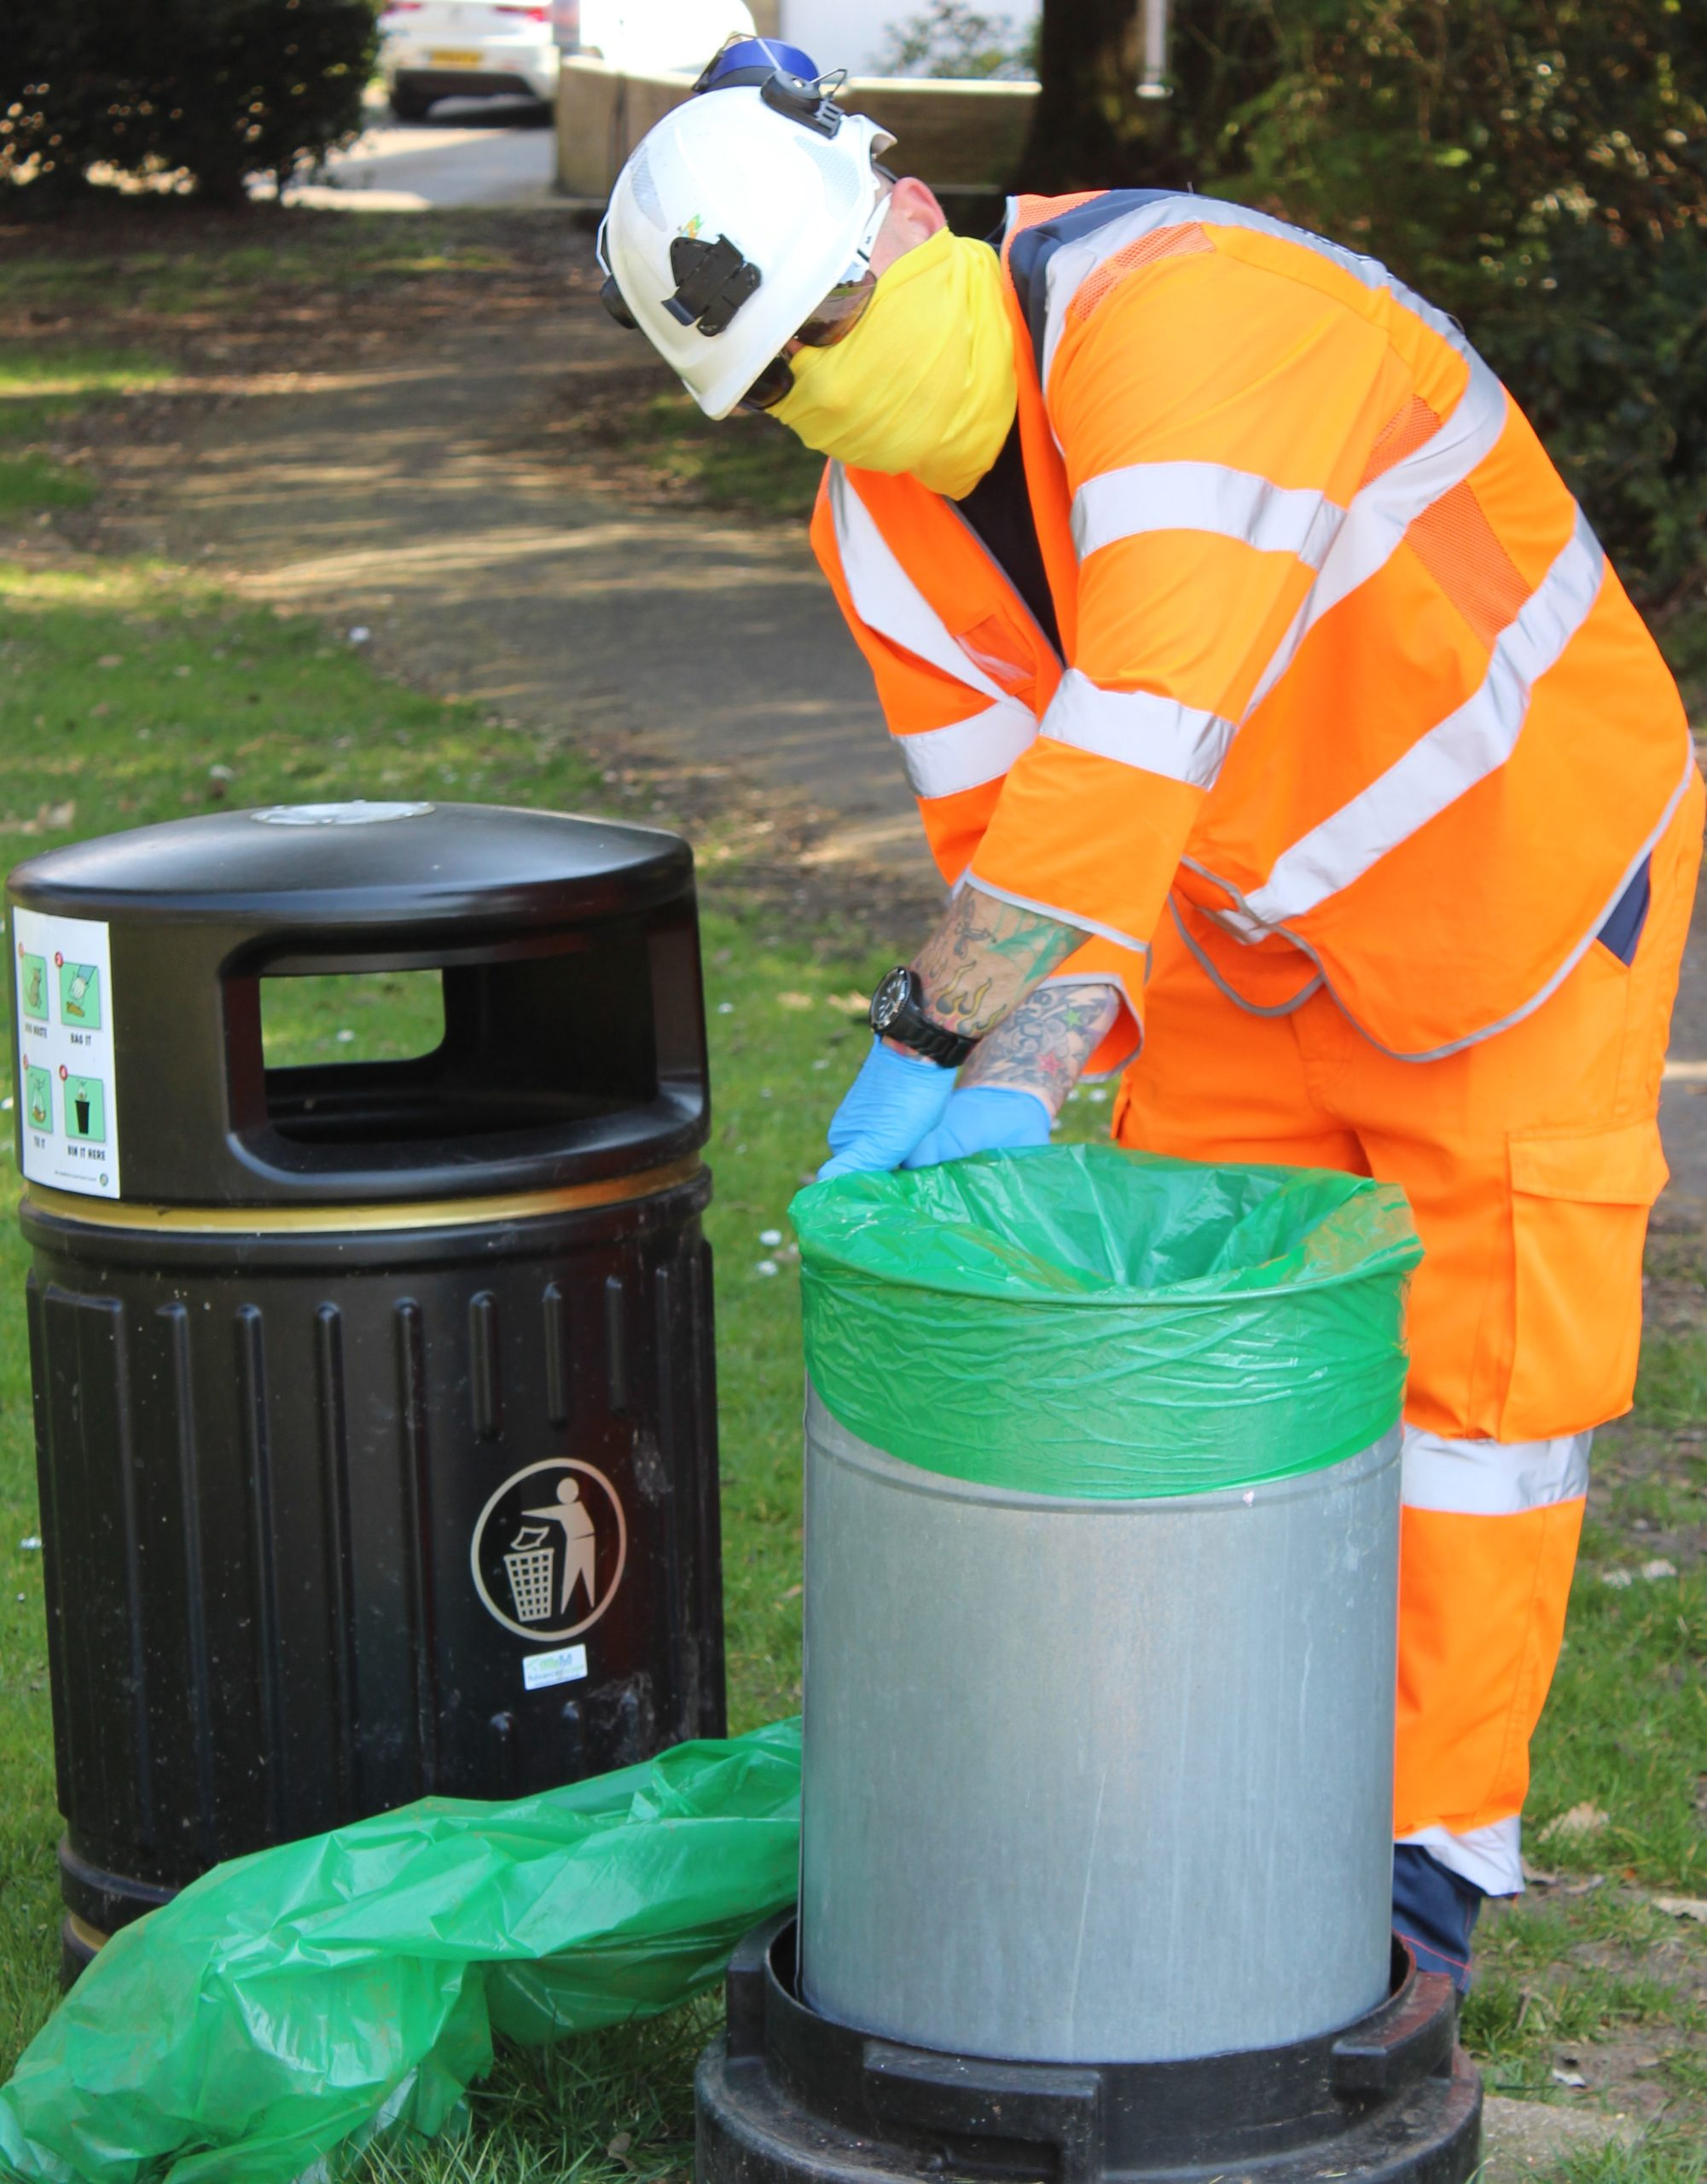 Photo showing Island Roads staff member emptying litter bins dressed in protective clothing